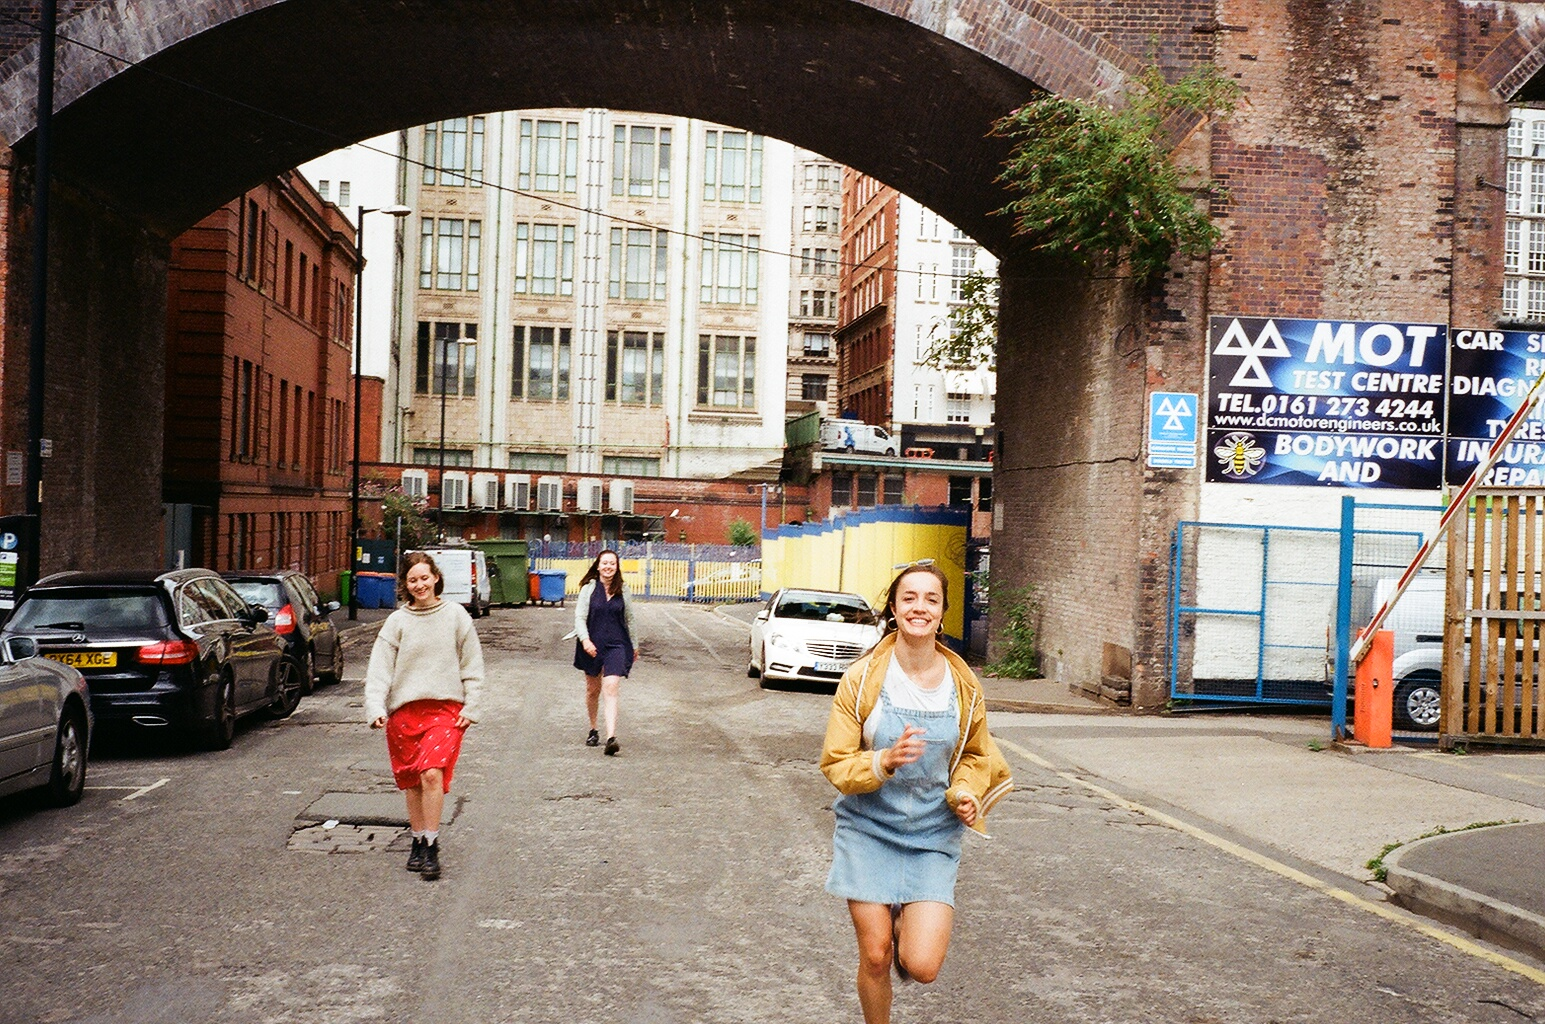 Café Spice band running under railway bridge